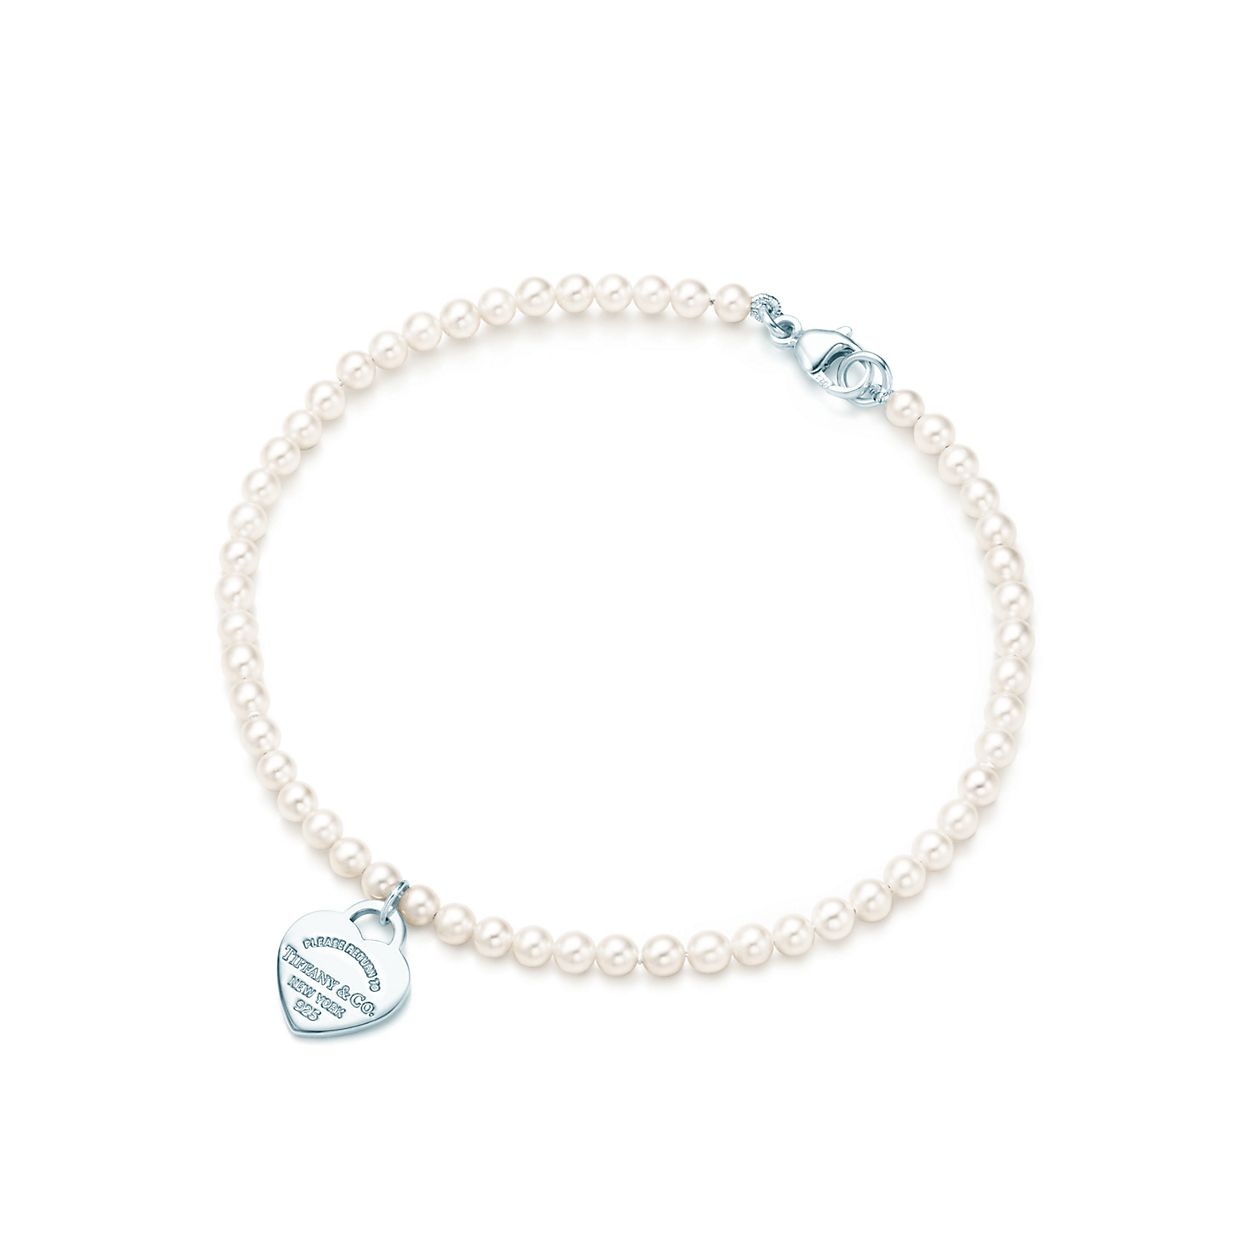 Return to Tiffany mini heart tag in sterling silver on a bead bracelet - Size 7 in Tiffany & Co. rp4y5fVK